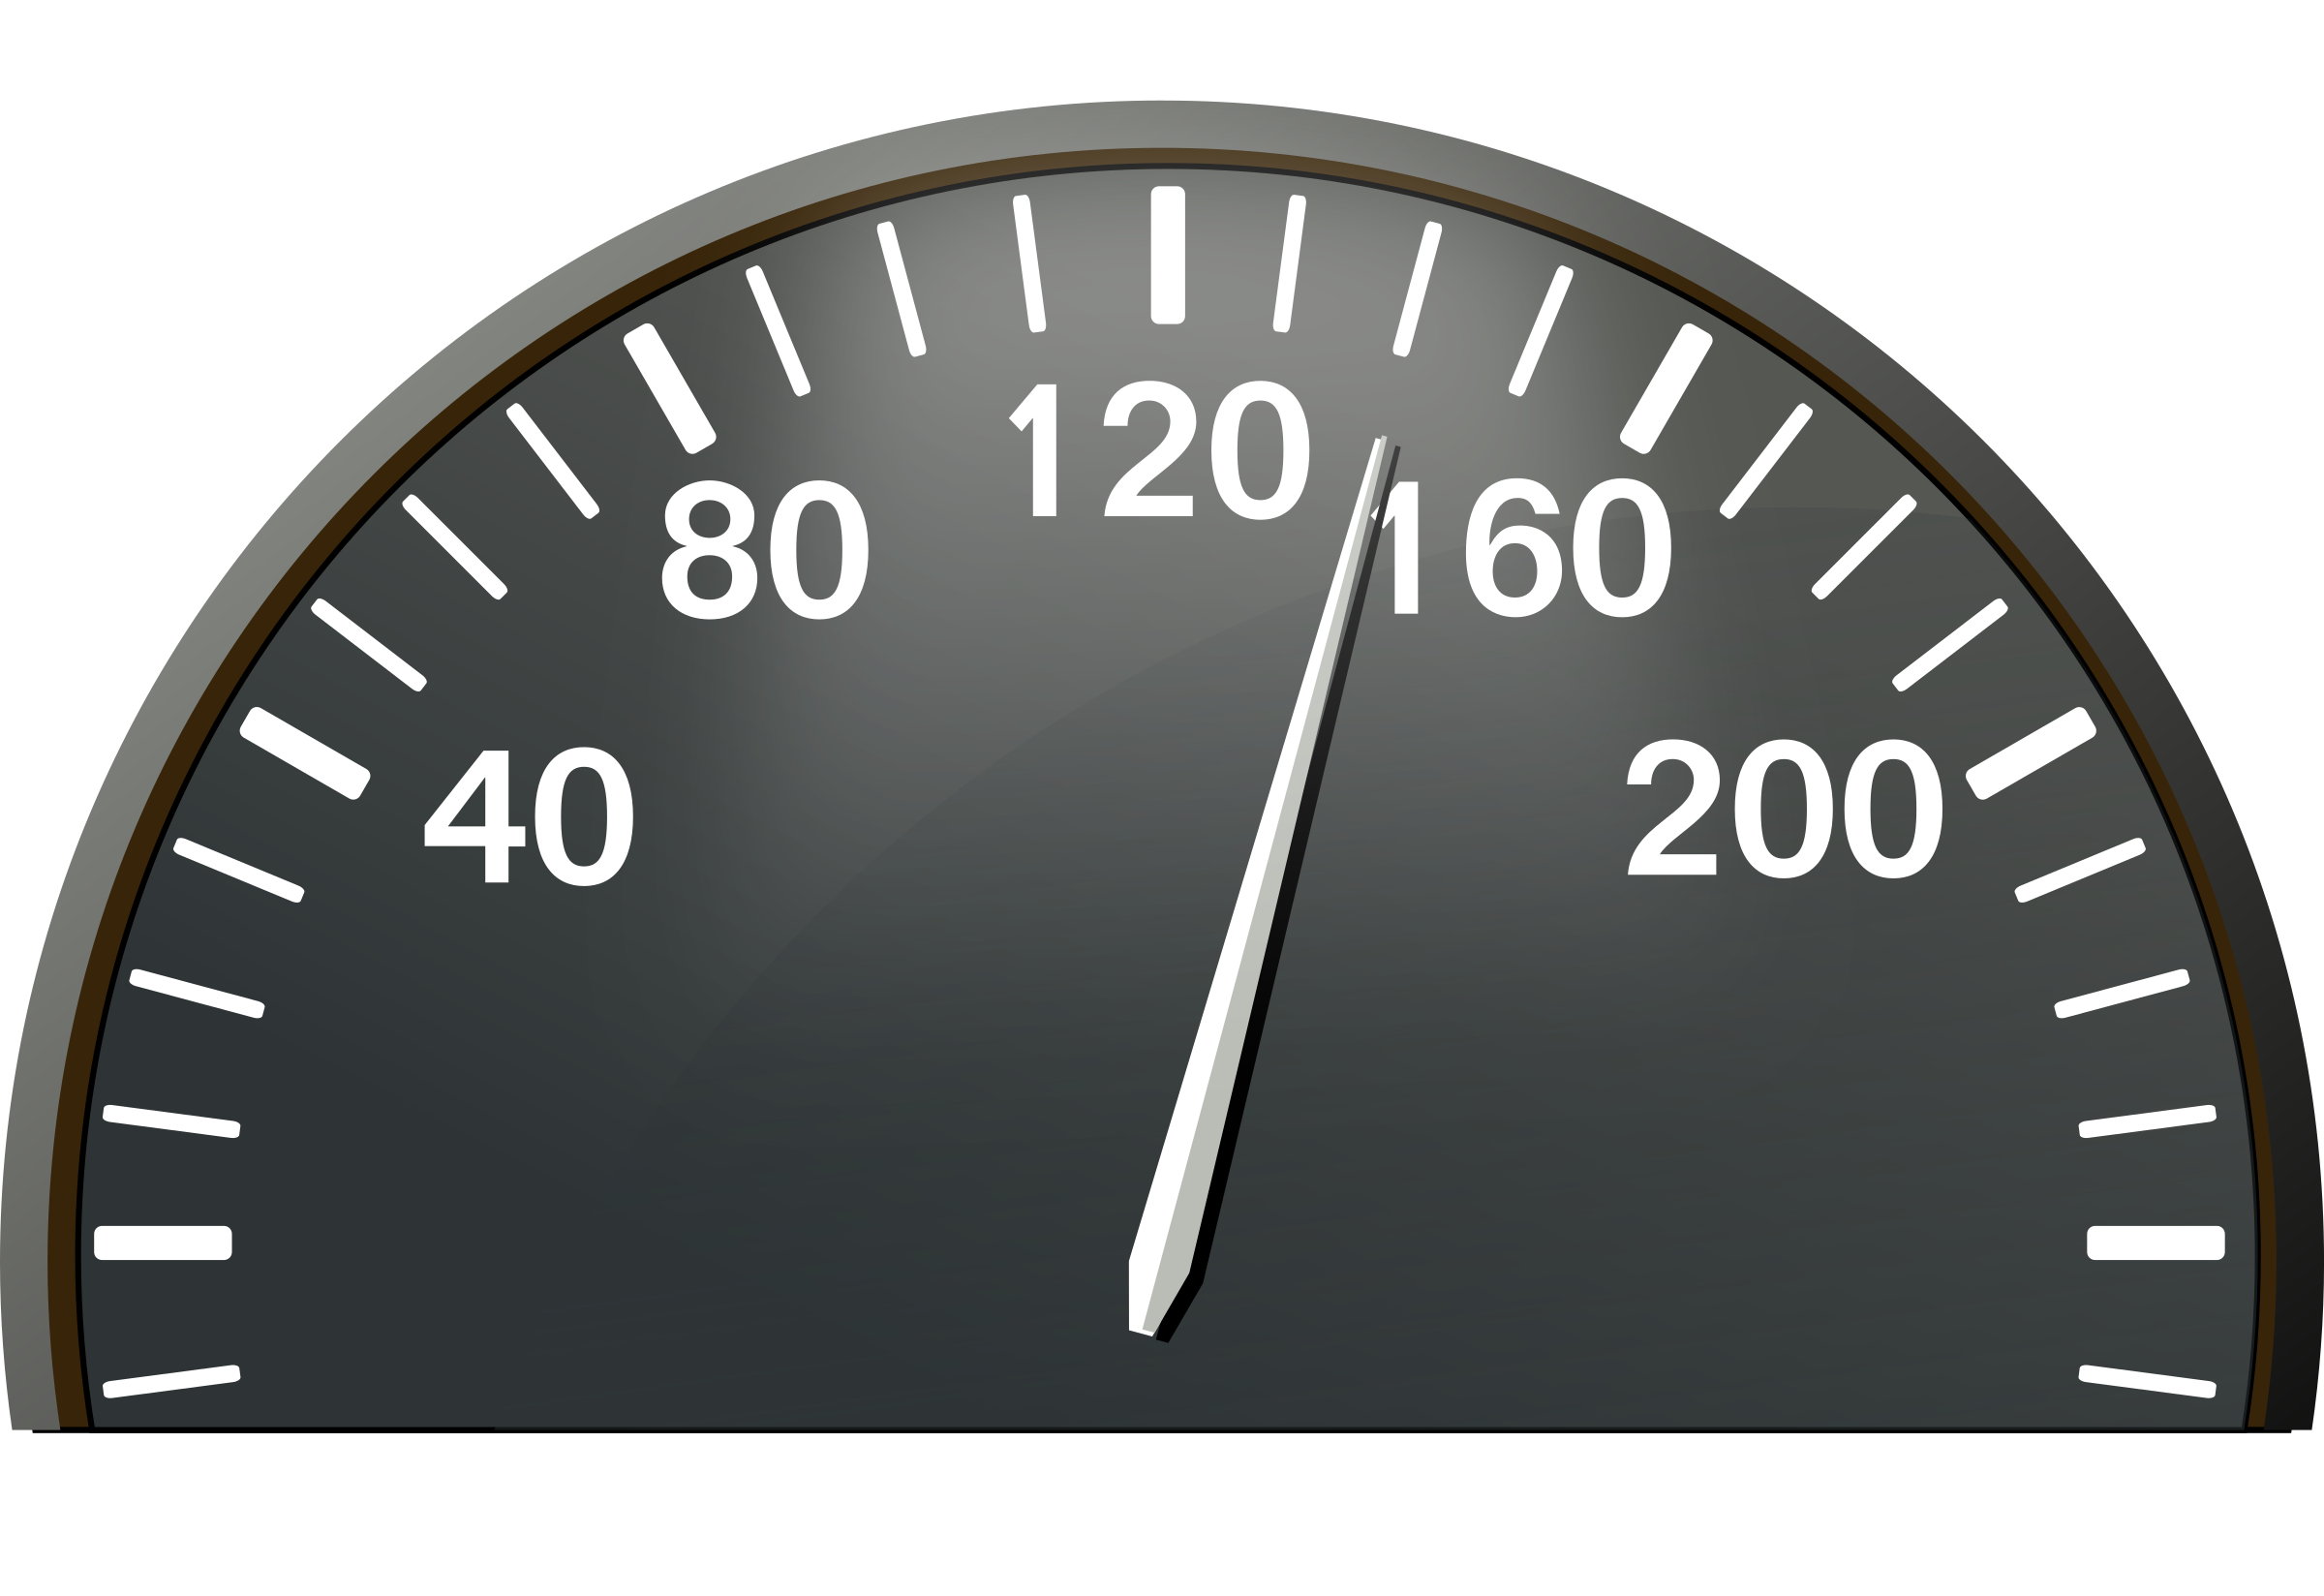 Clipart cars meter. Speedometer png images free